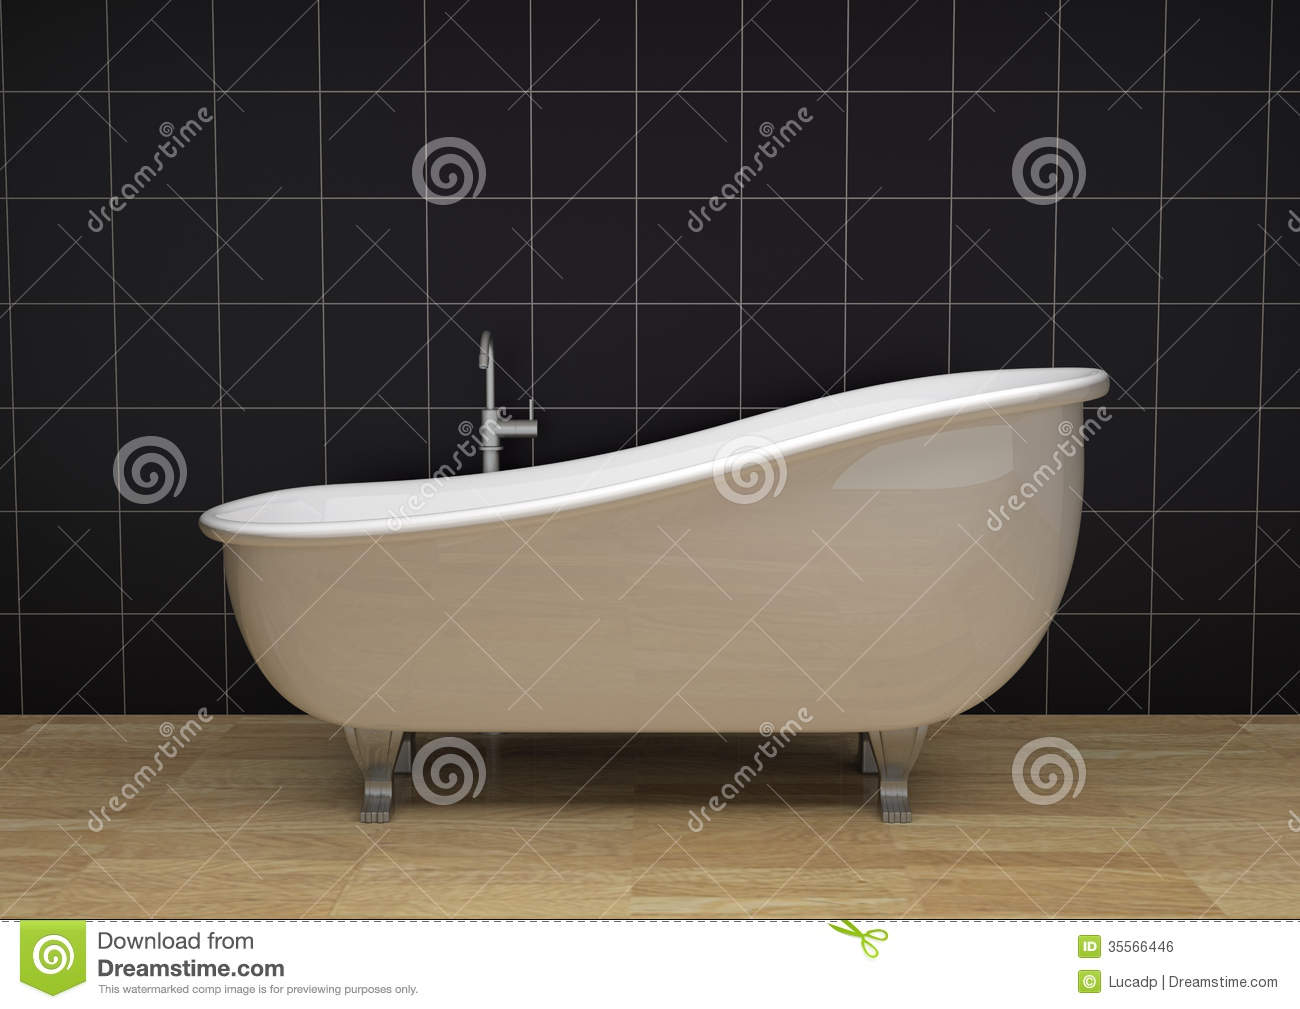 Vintage Bathtub Royalty Free Stock Image   Image  35566446